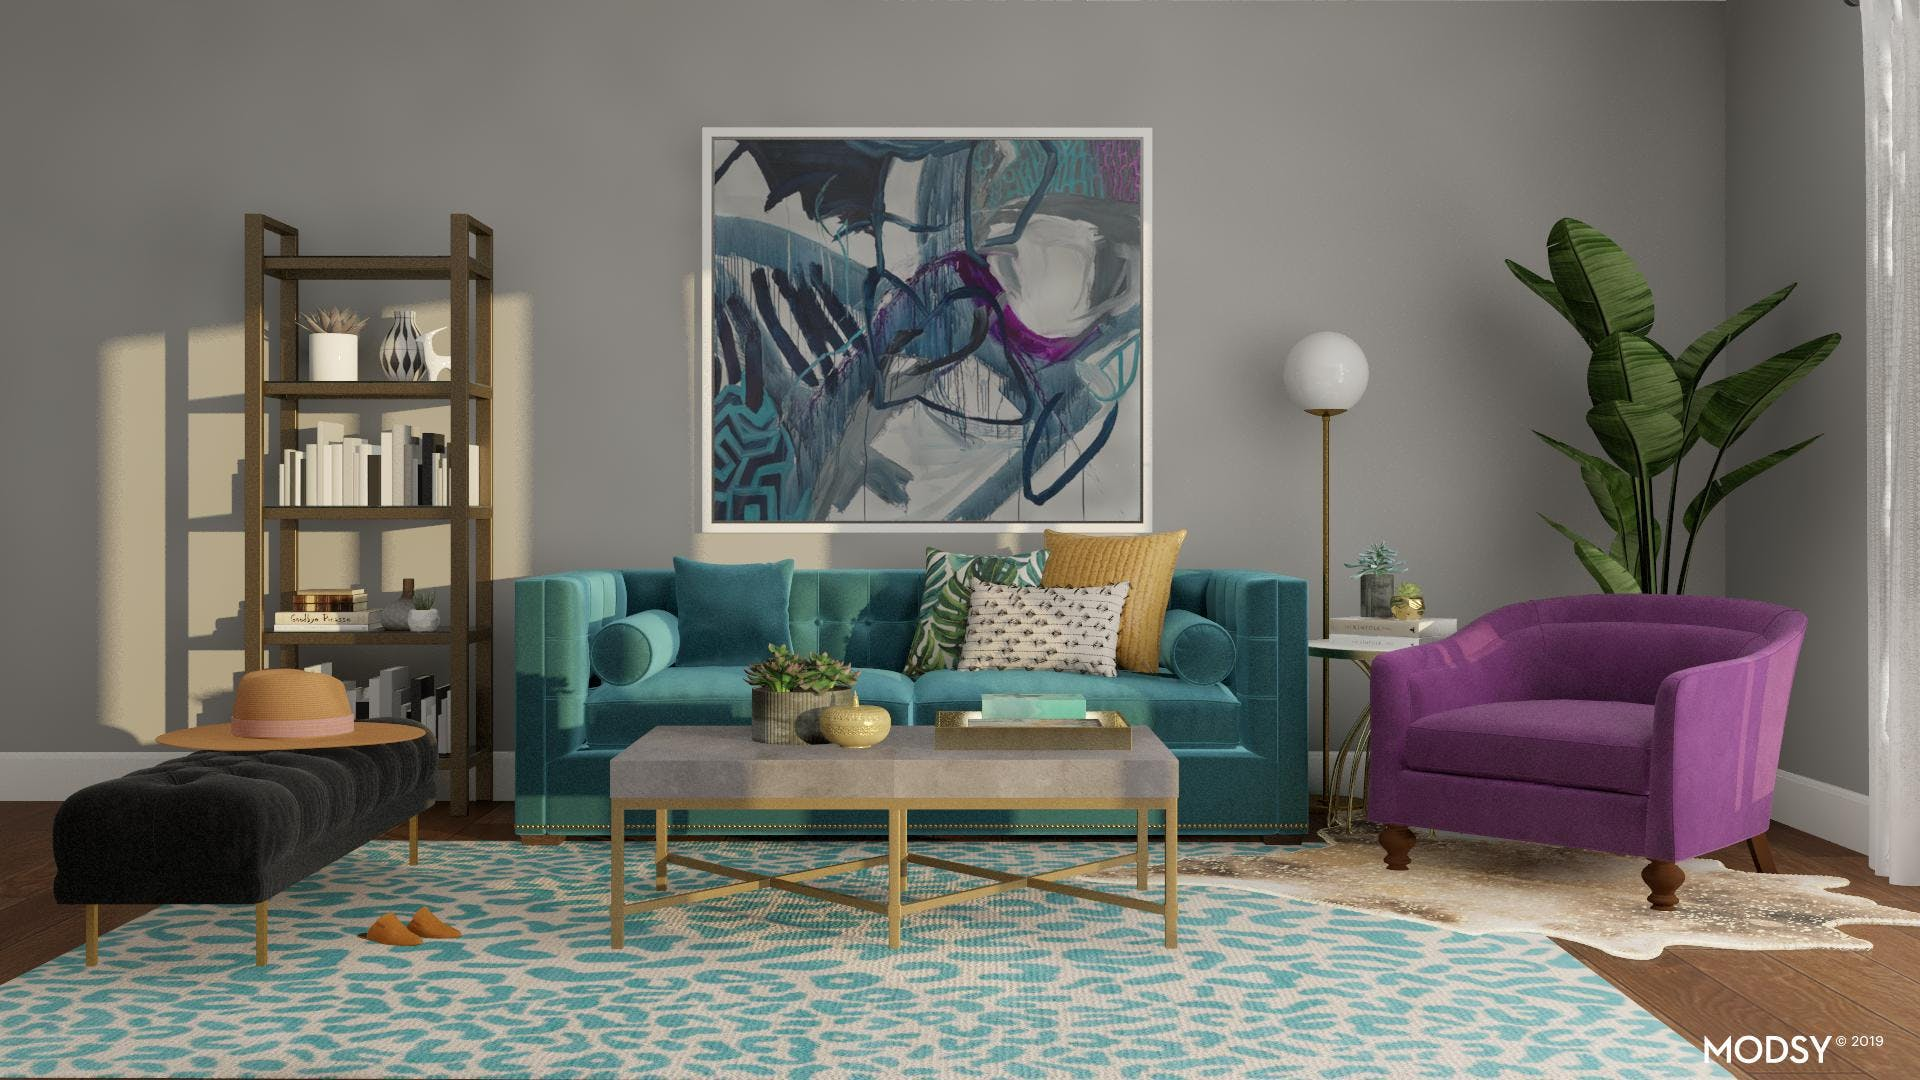 Chic Living Room with Eclectic Accents